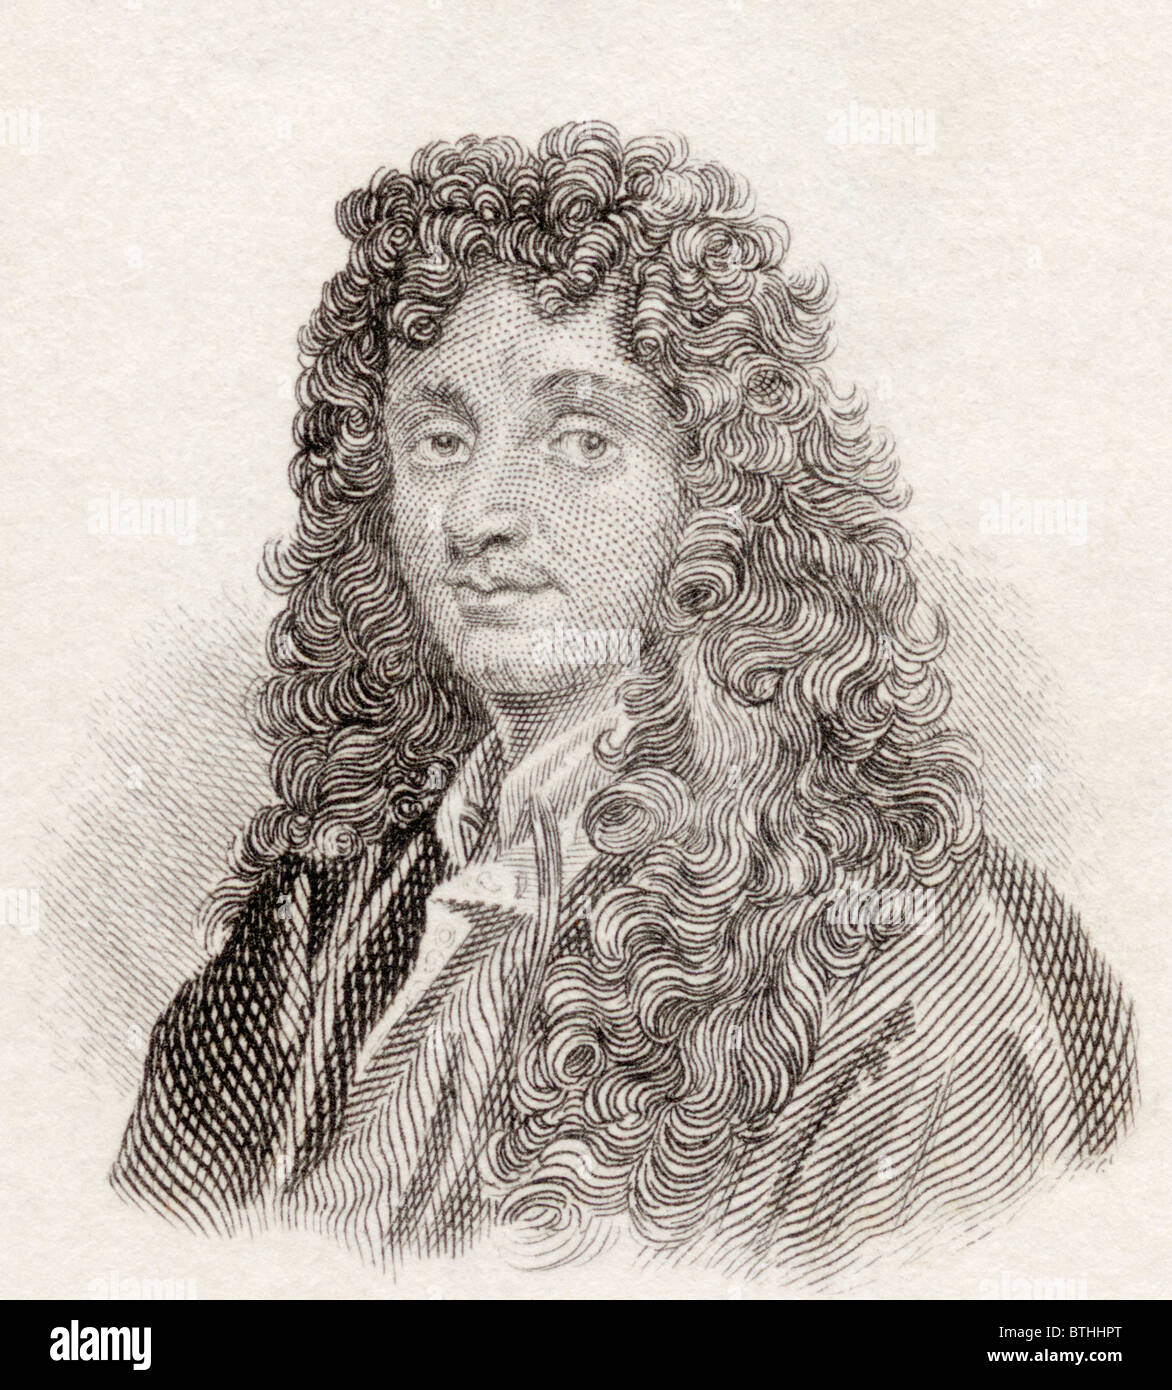 Christiaan Huygens, 1629 to 1695. Dutch mathematician, astronomer, physicist, horologist and writer of early science - Stock Image